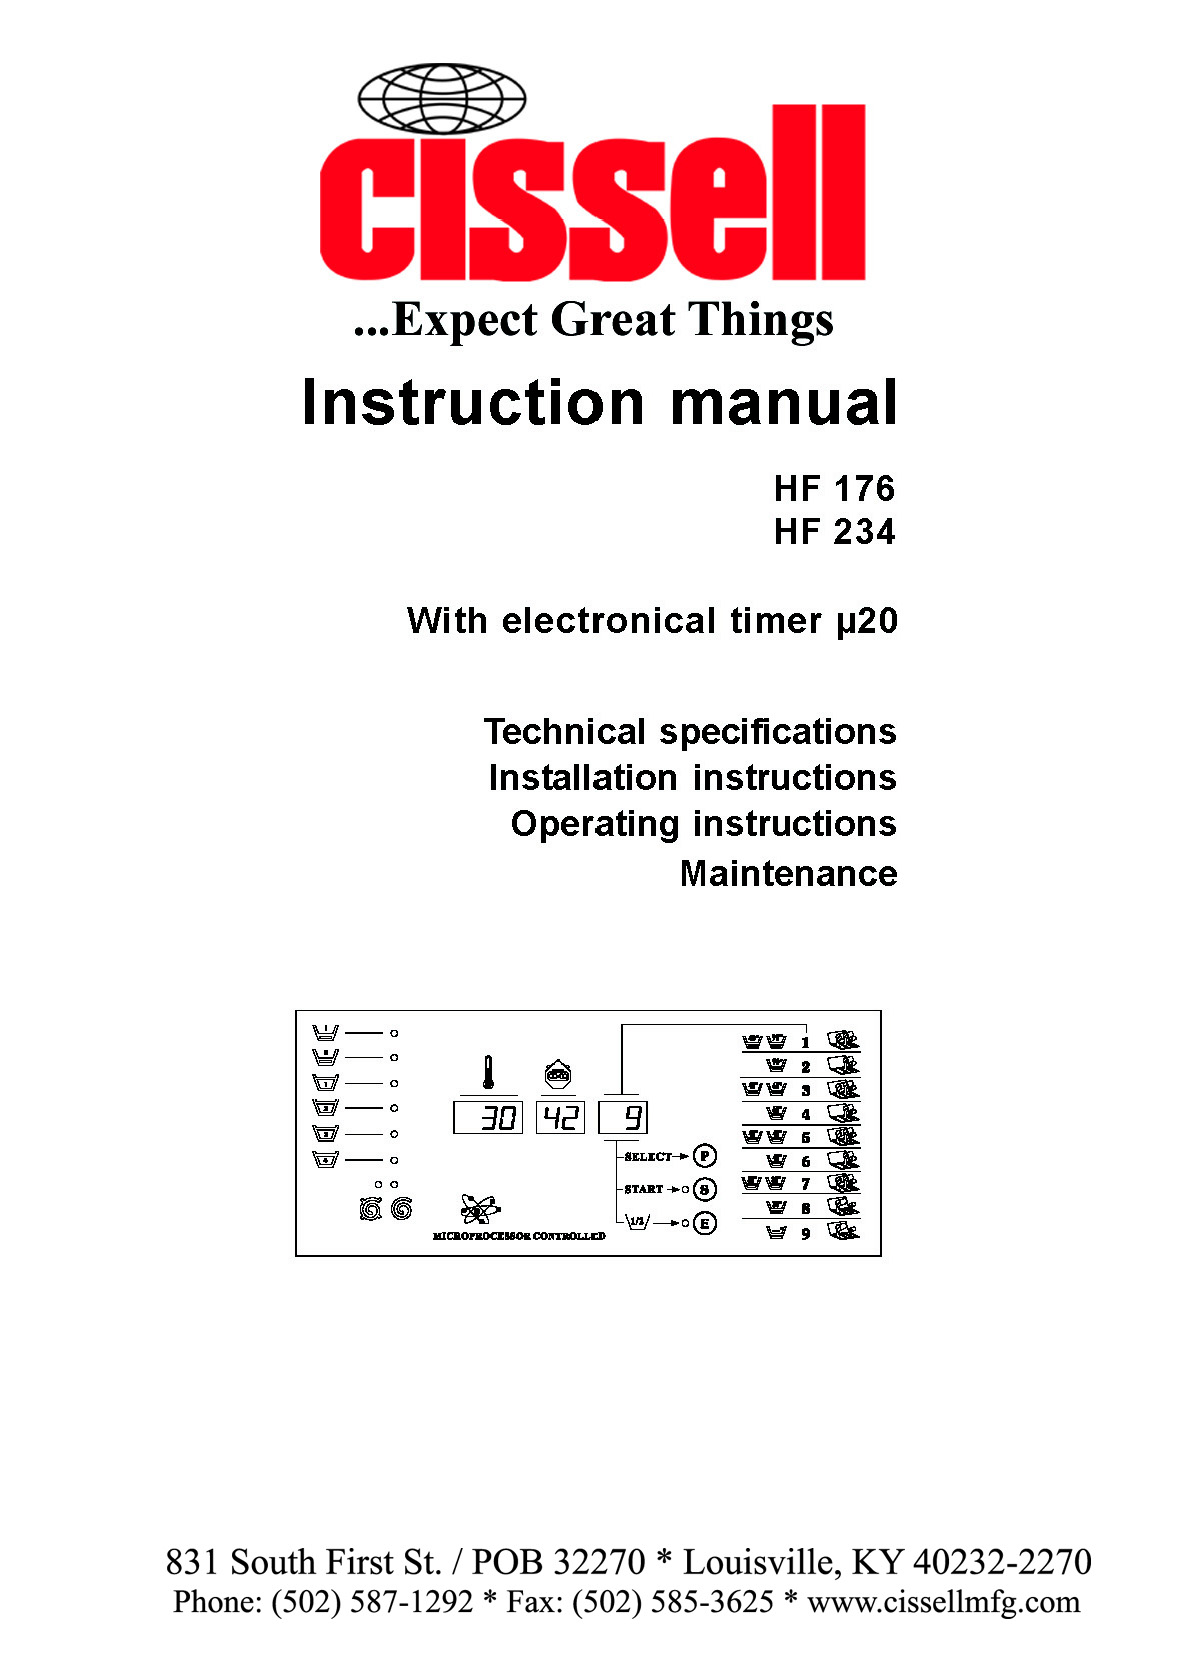 Cissell Washer HF 234 User Guide | ManualsOnline.com on greenheck wiring diagrams, speed queen wiring diagrams, merco wiring diagrams, vulcan hart wiring diagrams, lincoln wiring diagrams, unimac wiring diagrams, champion wiring diagrams, asco wiring diagrams, fisher wiring diagrams, hatco wiring diagrams, milnor wiring diagrams, maytag wiring diagrams, imperial range wiring diagrams, delfield wiring diagrams,